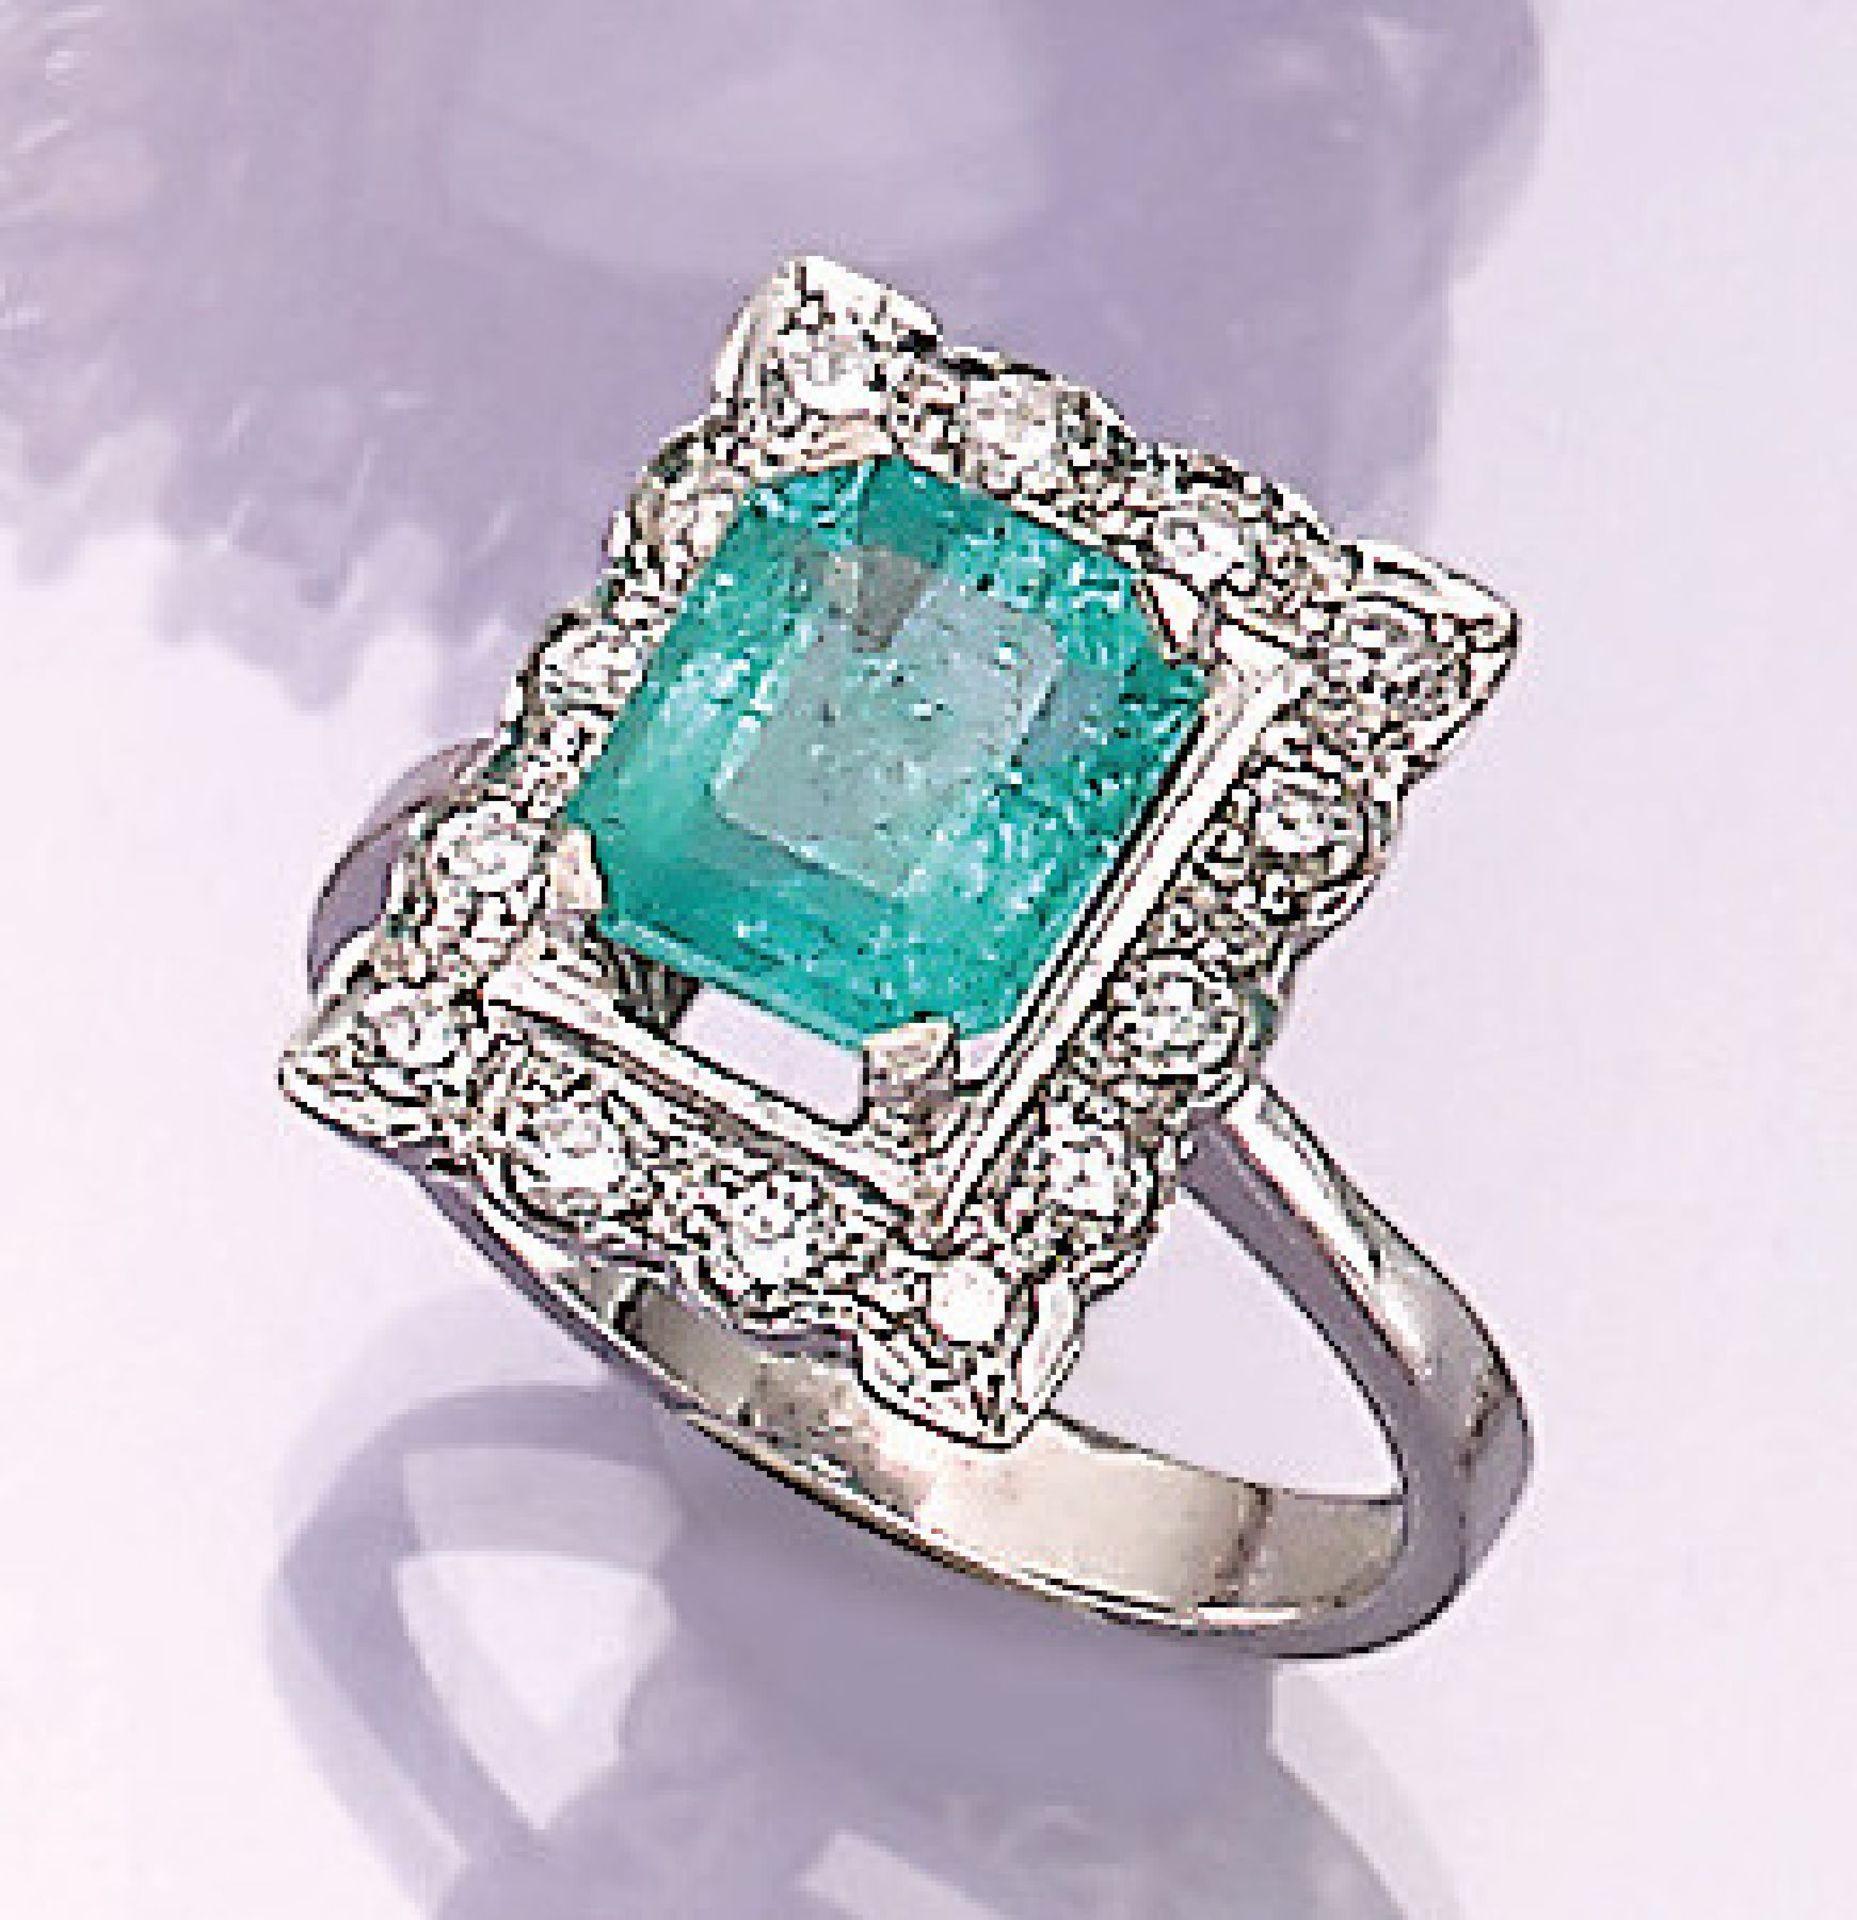 Los 31537 - 18 kt gold ring with emerald and diamonds , oval bevelled emerald approx. 3.0 ct, 14 brilliants